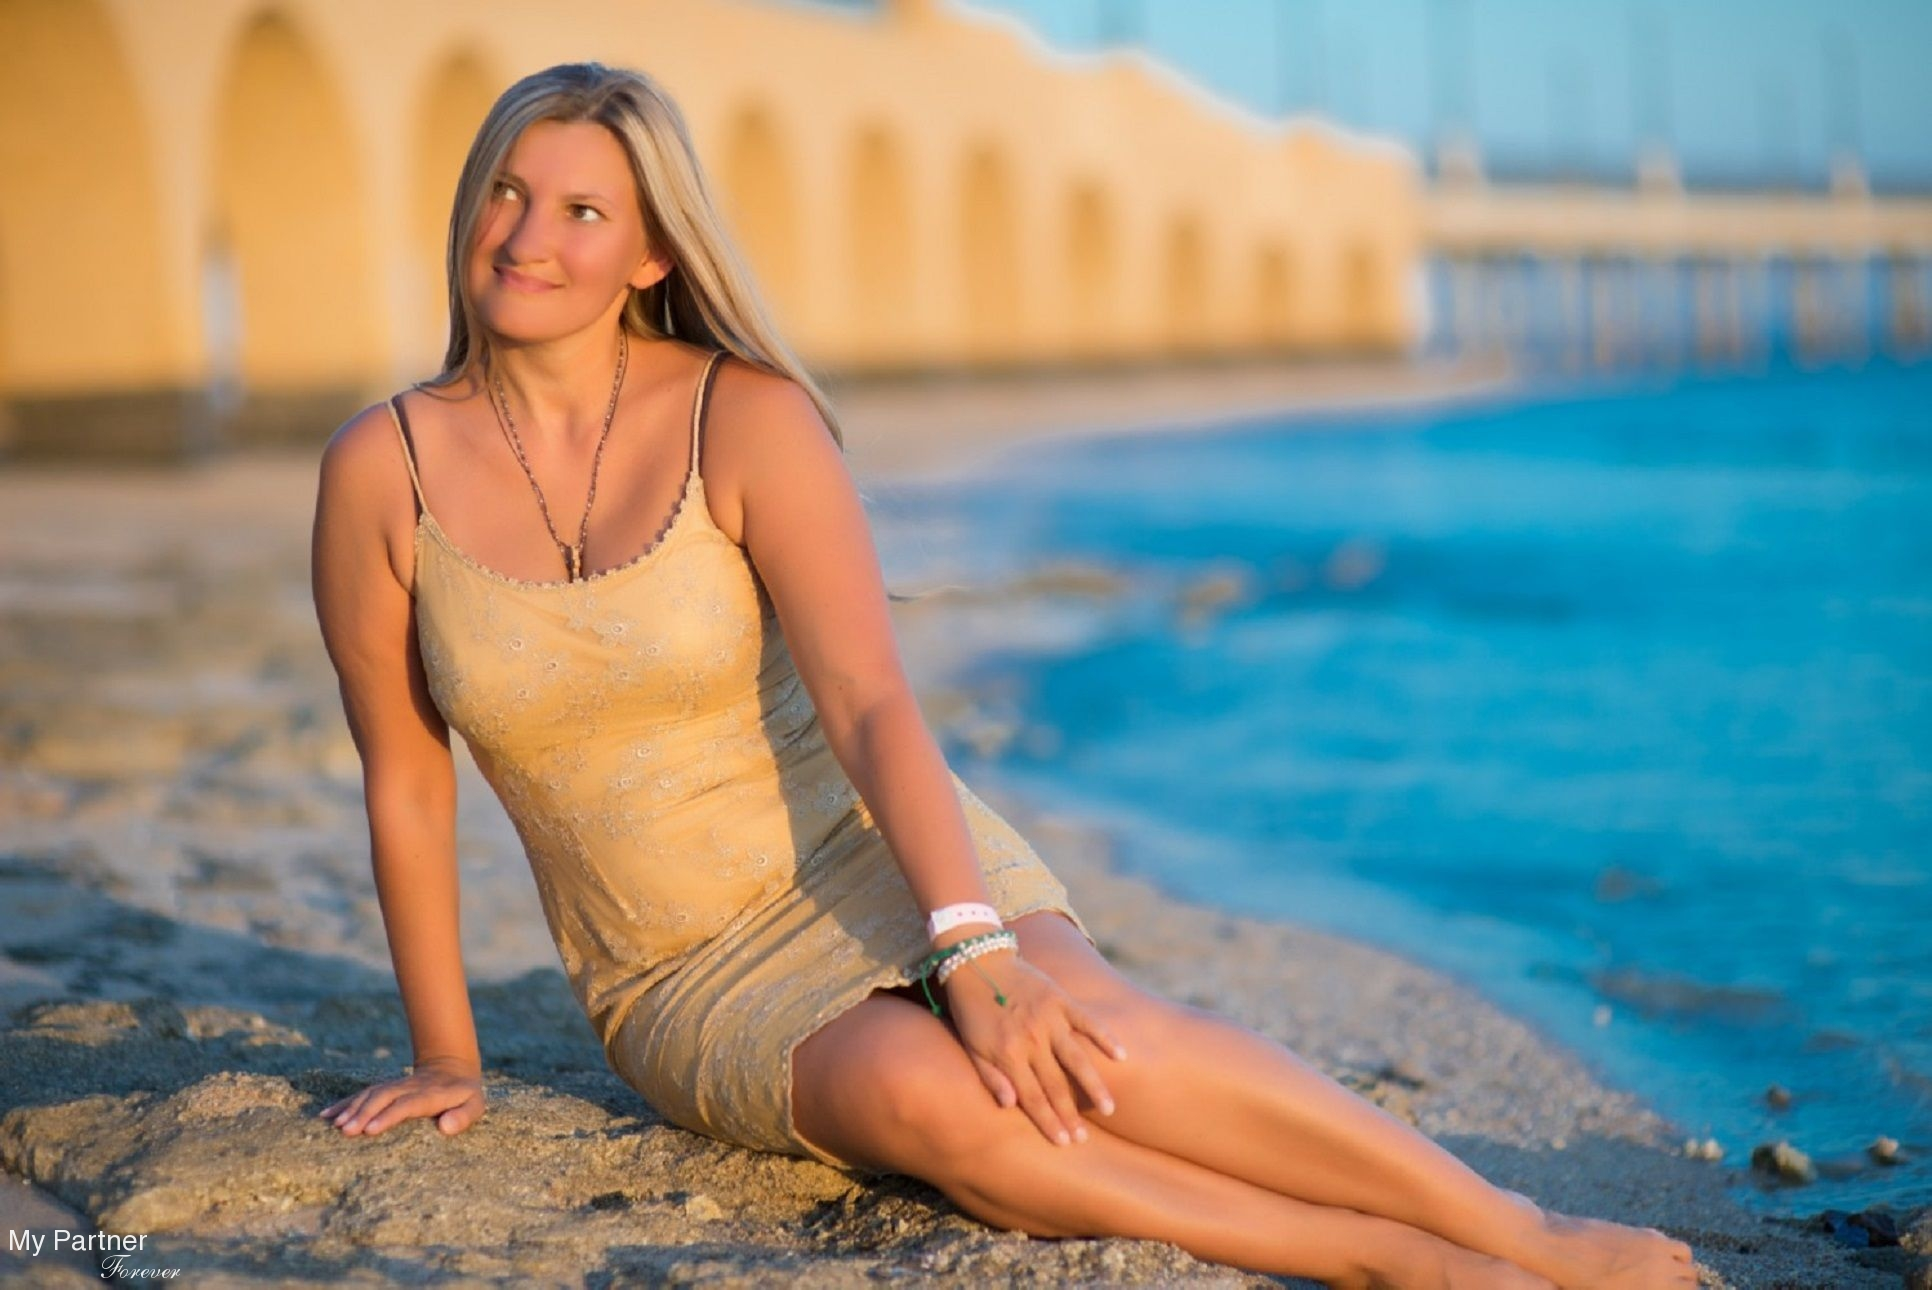 Meet Pretty Ukrainian Woman Olga from Zaporozhye, Ukraine